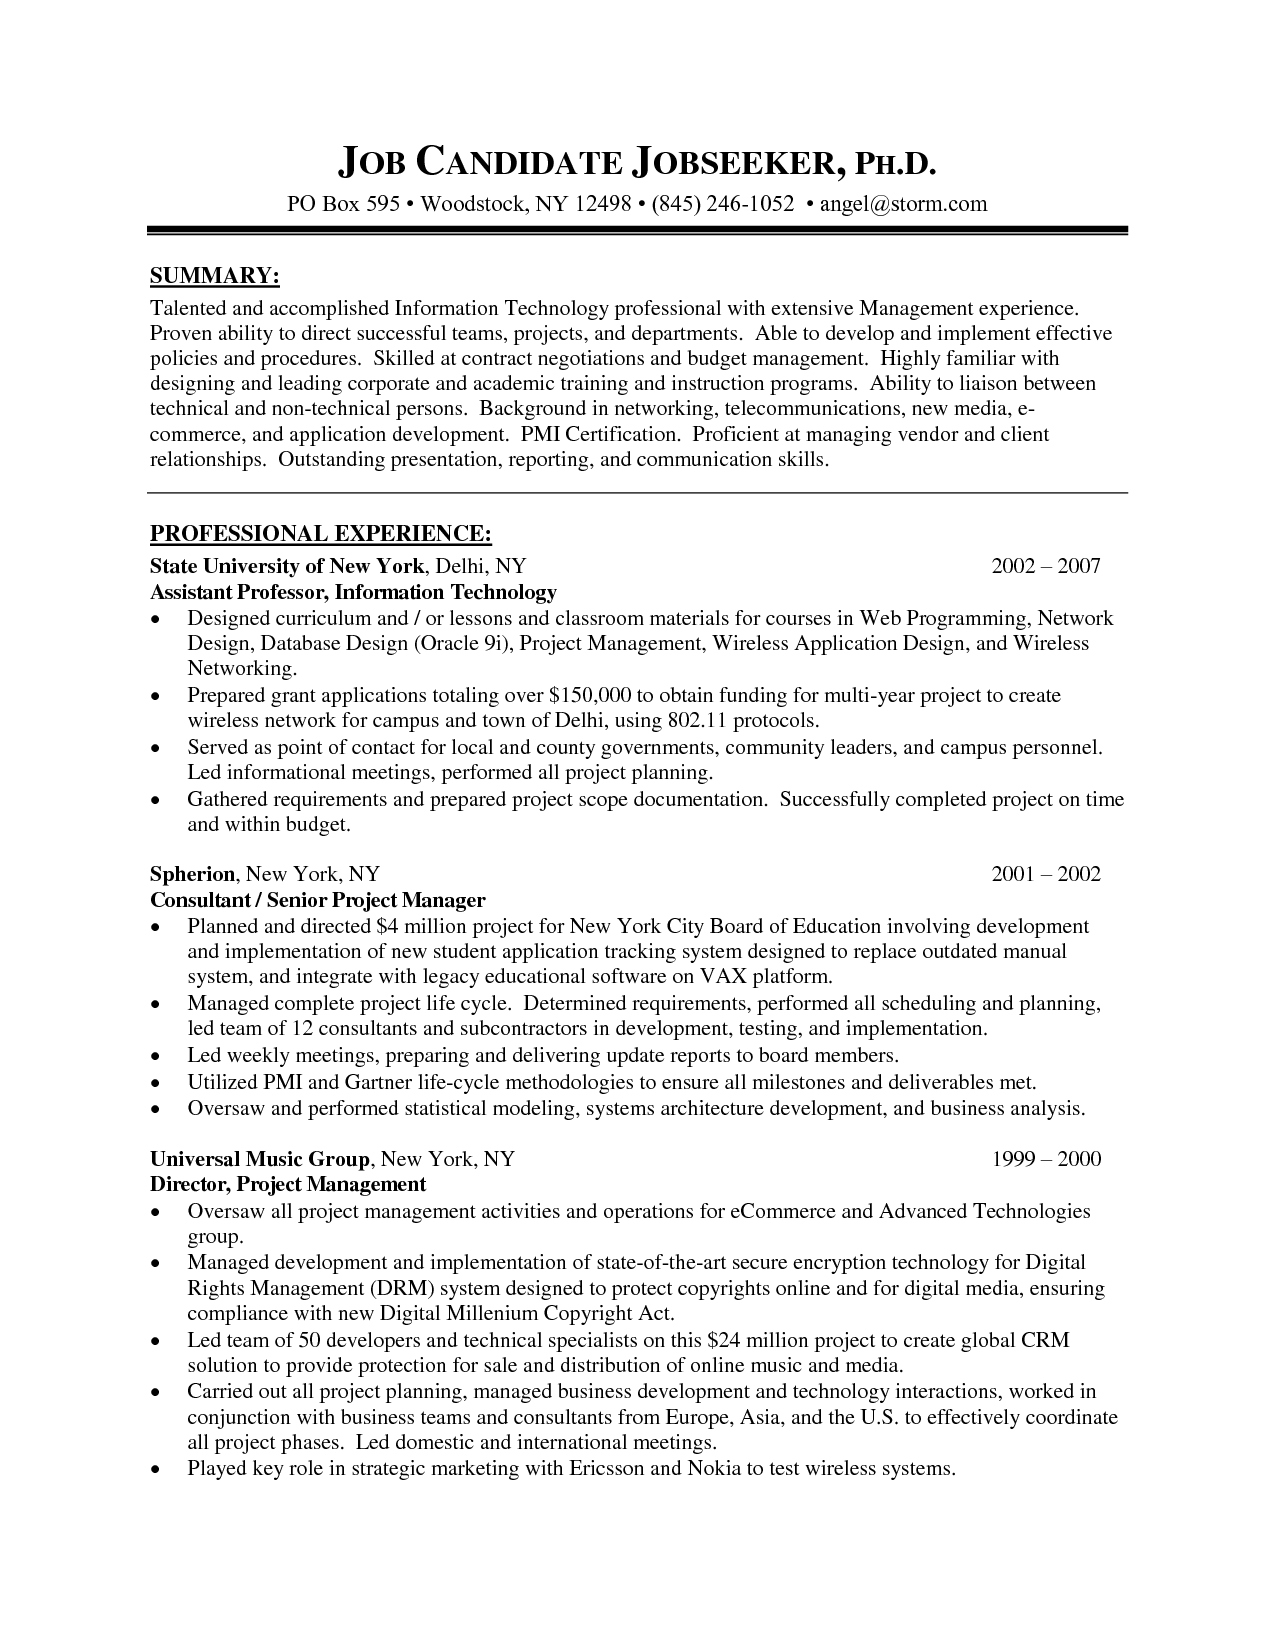 sample senior project manager resume - Roberto.mattni.co